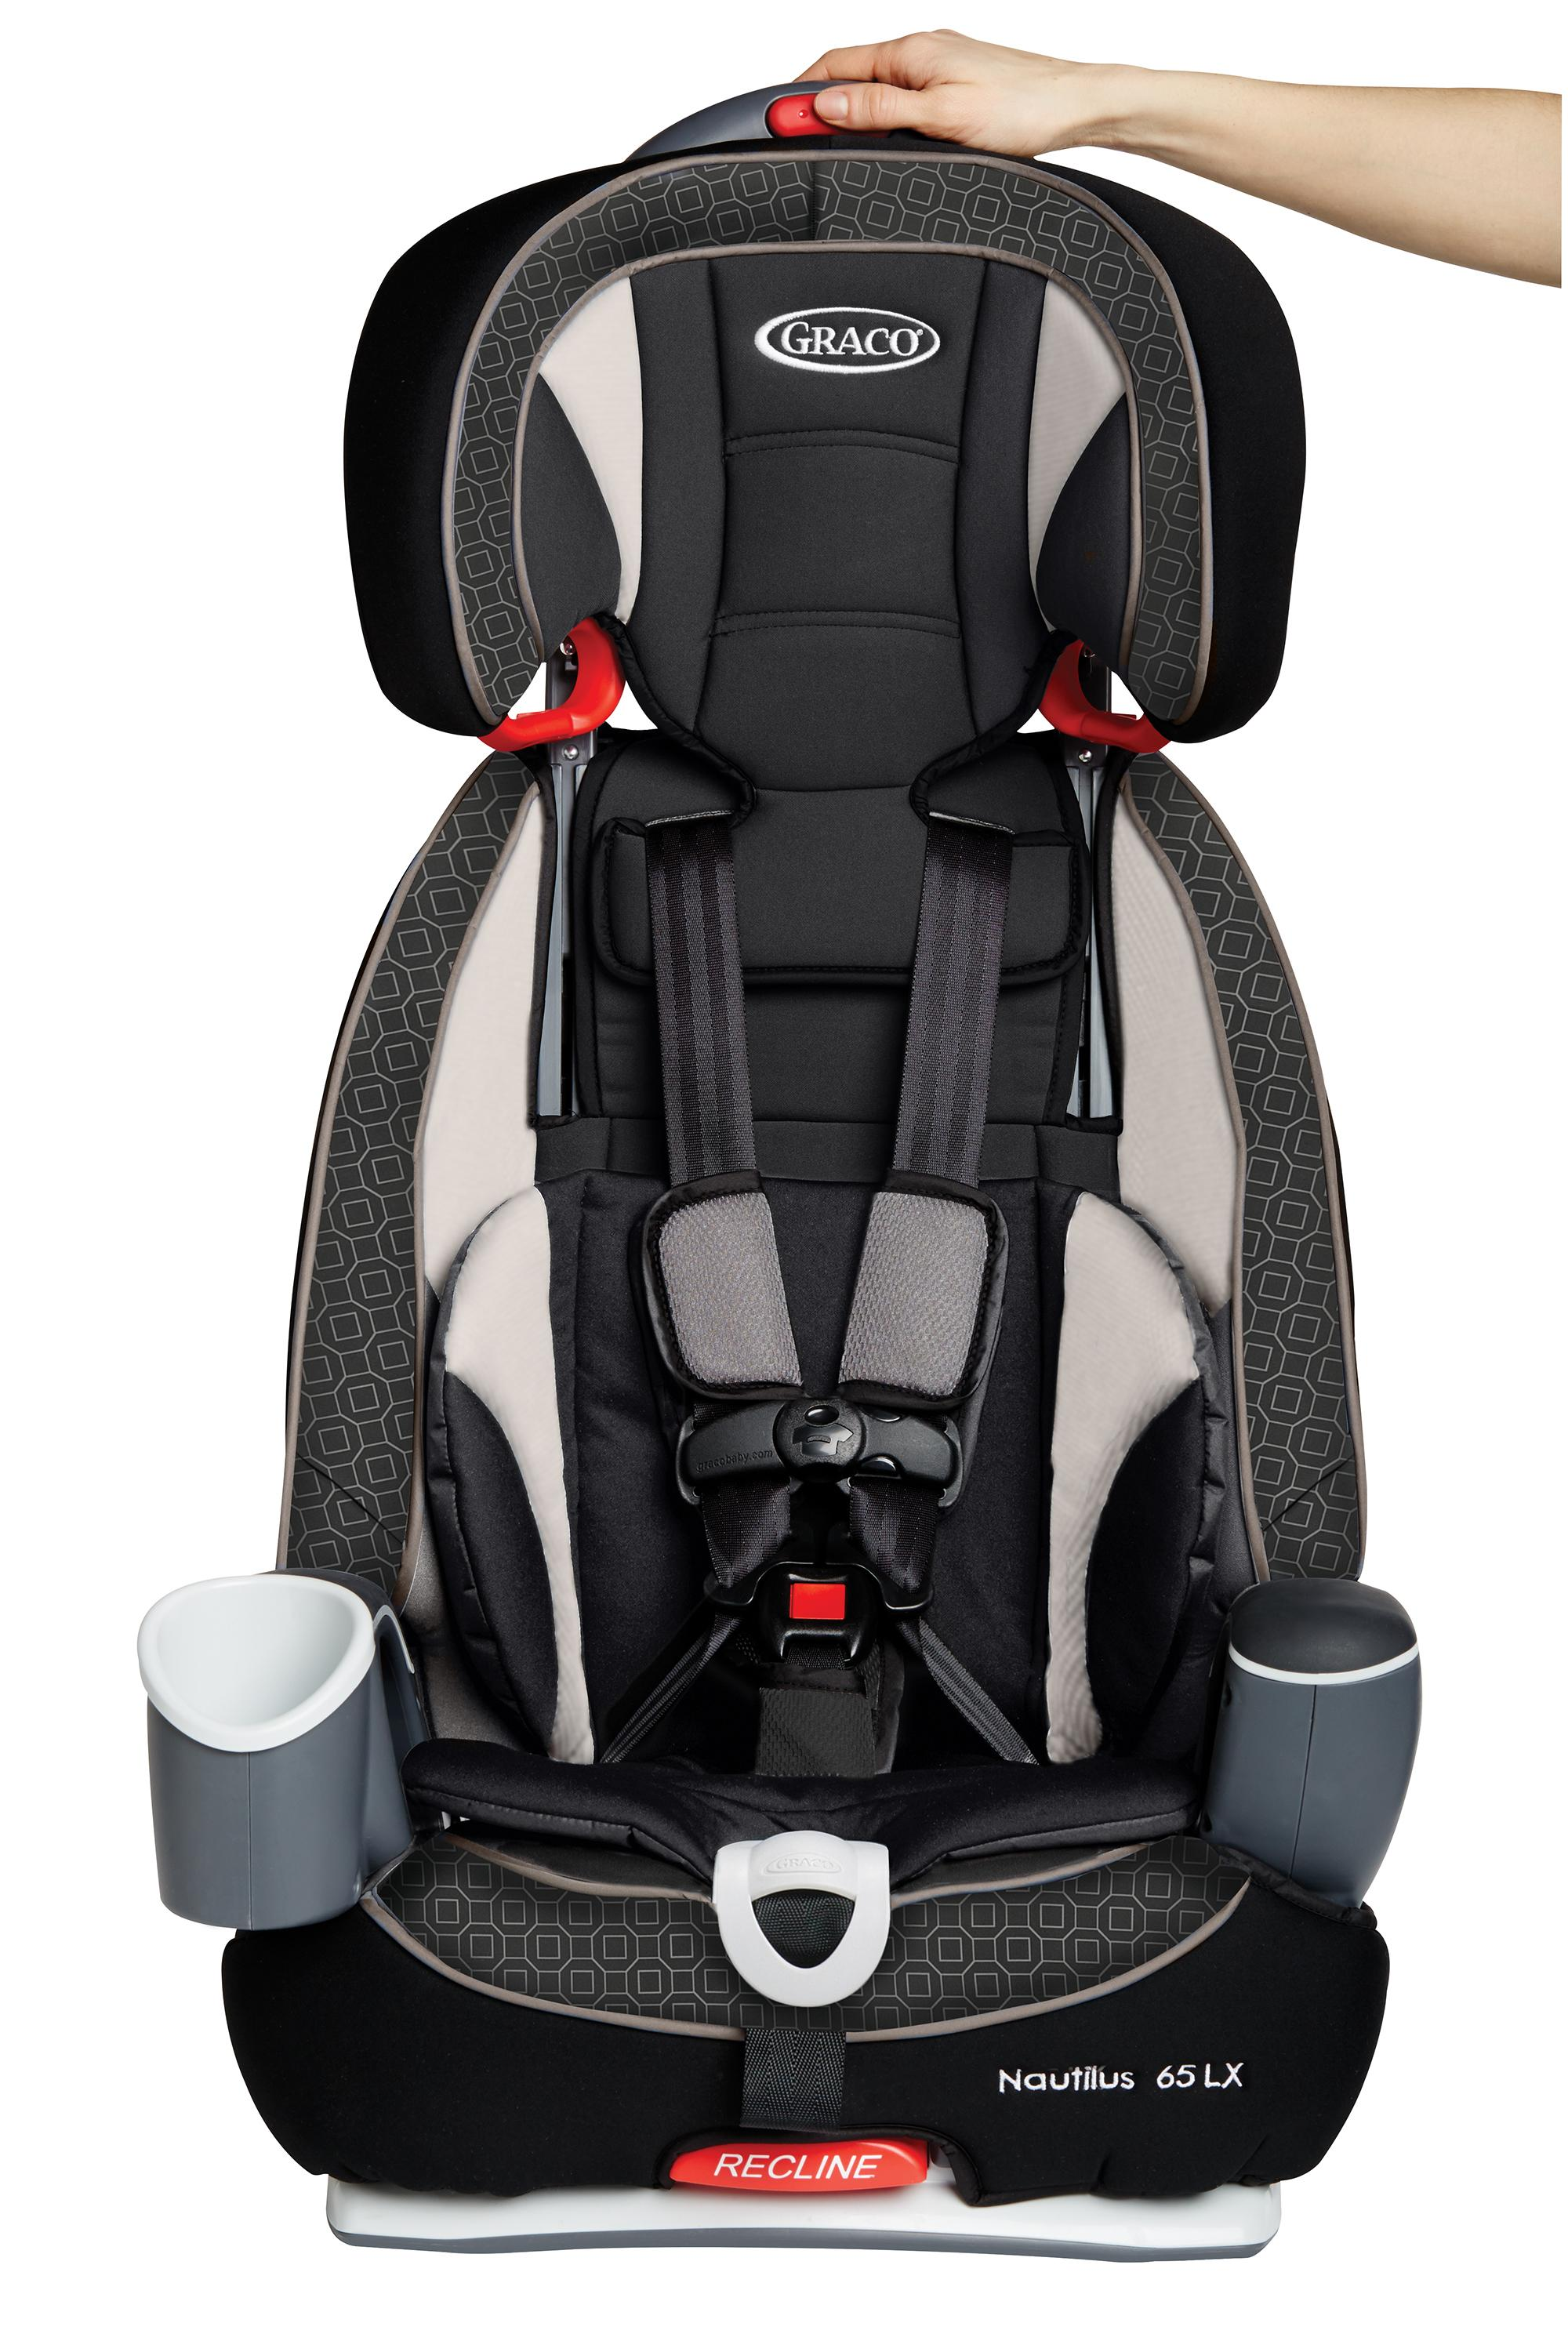 graco nautilus 65 lx 3 in 1 harness booster car seat pierce baby. Black Bedroom Furniture Sets. Home Design Ideas